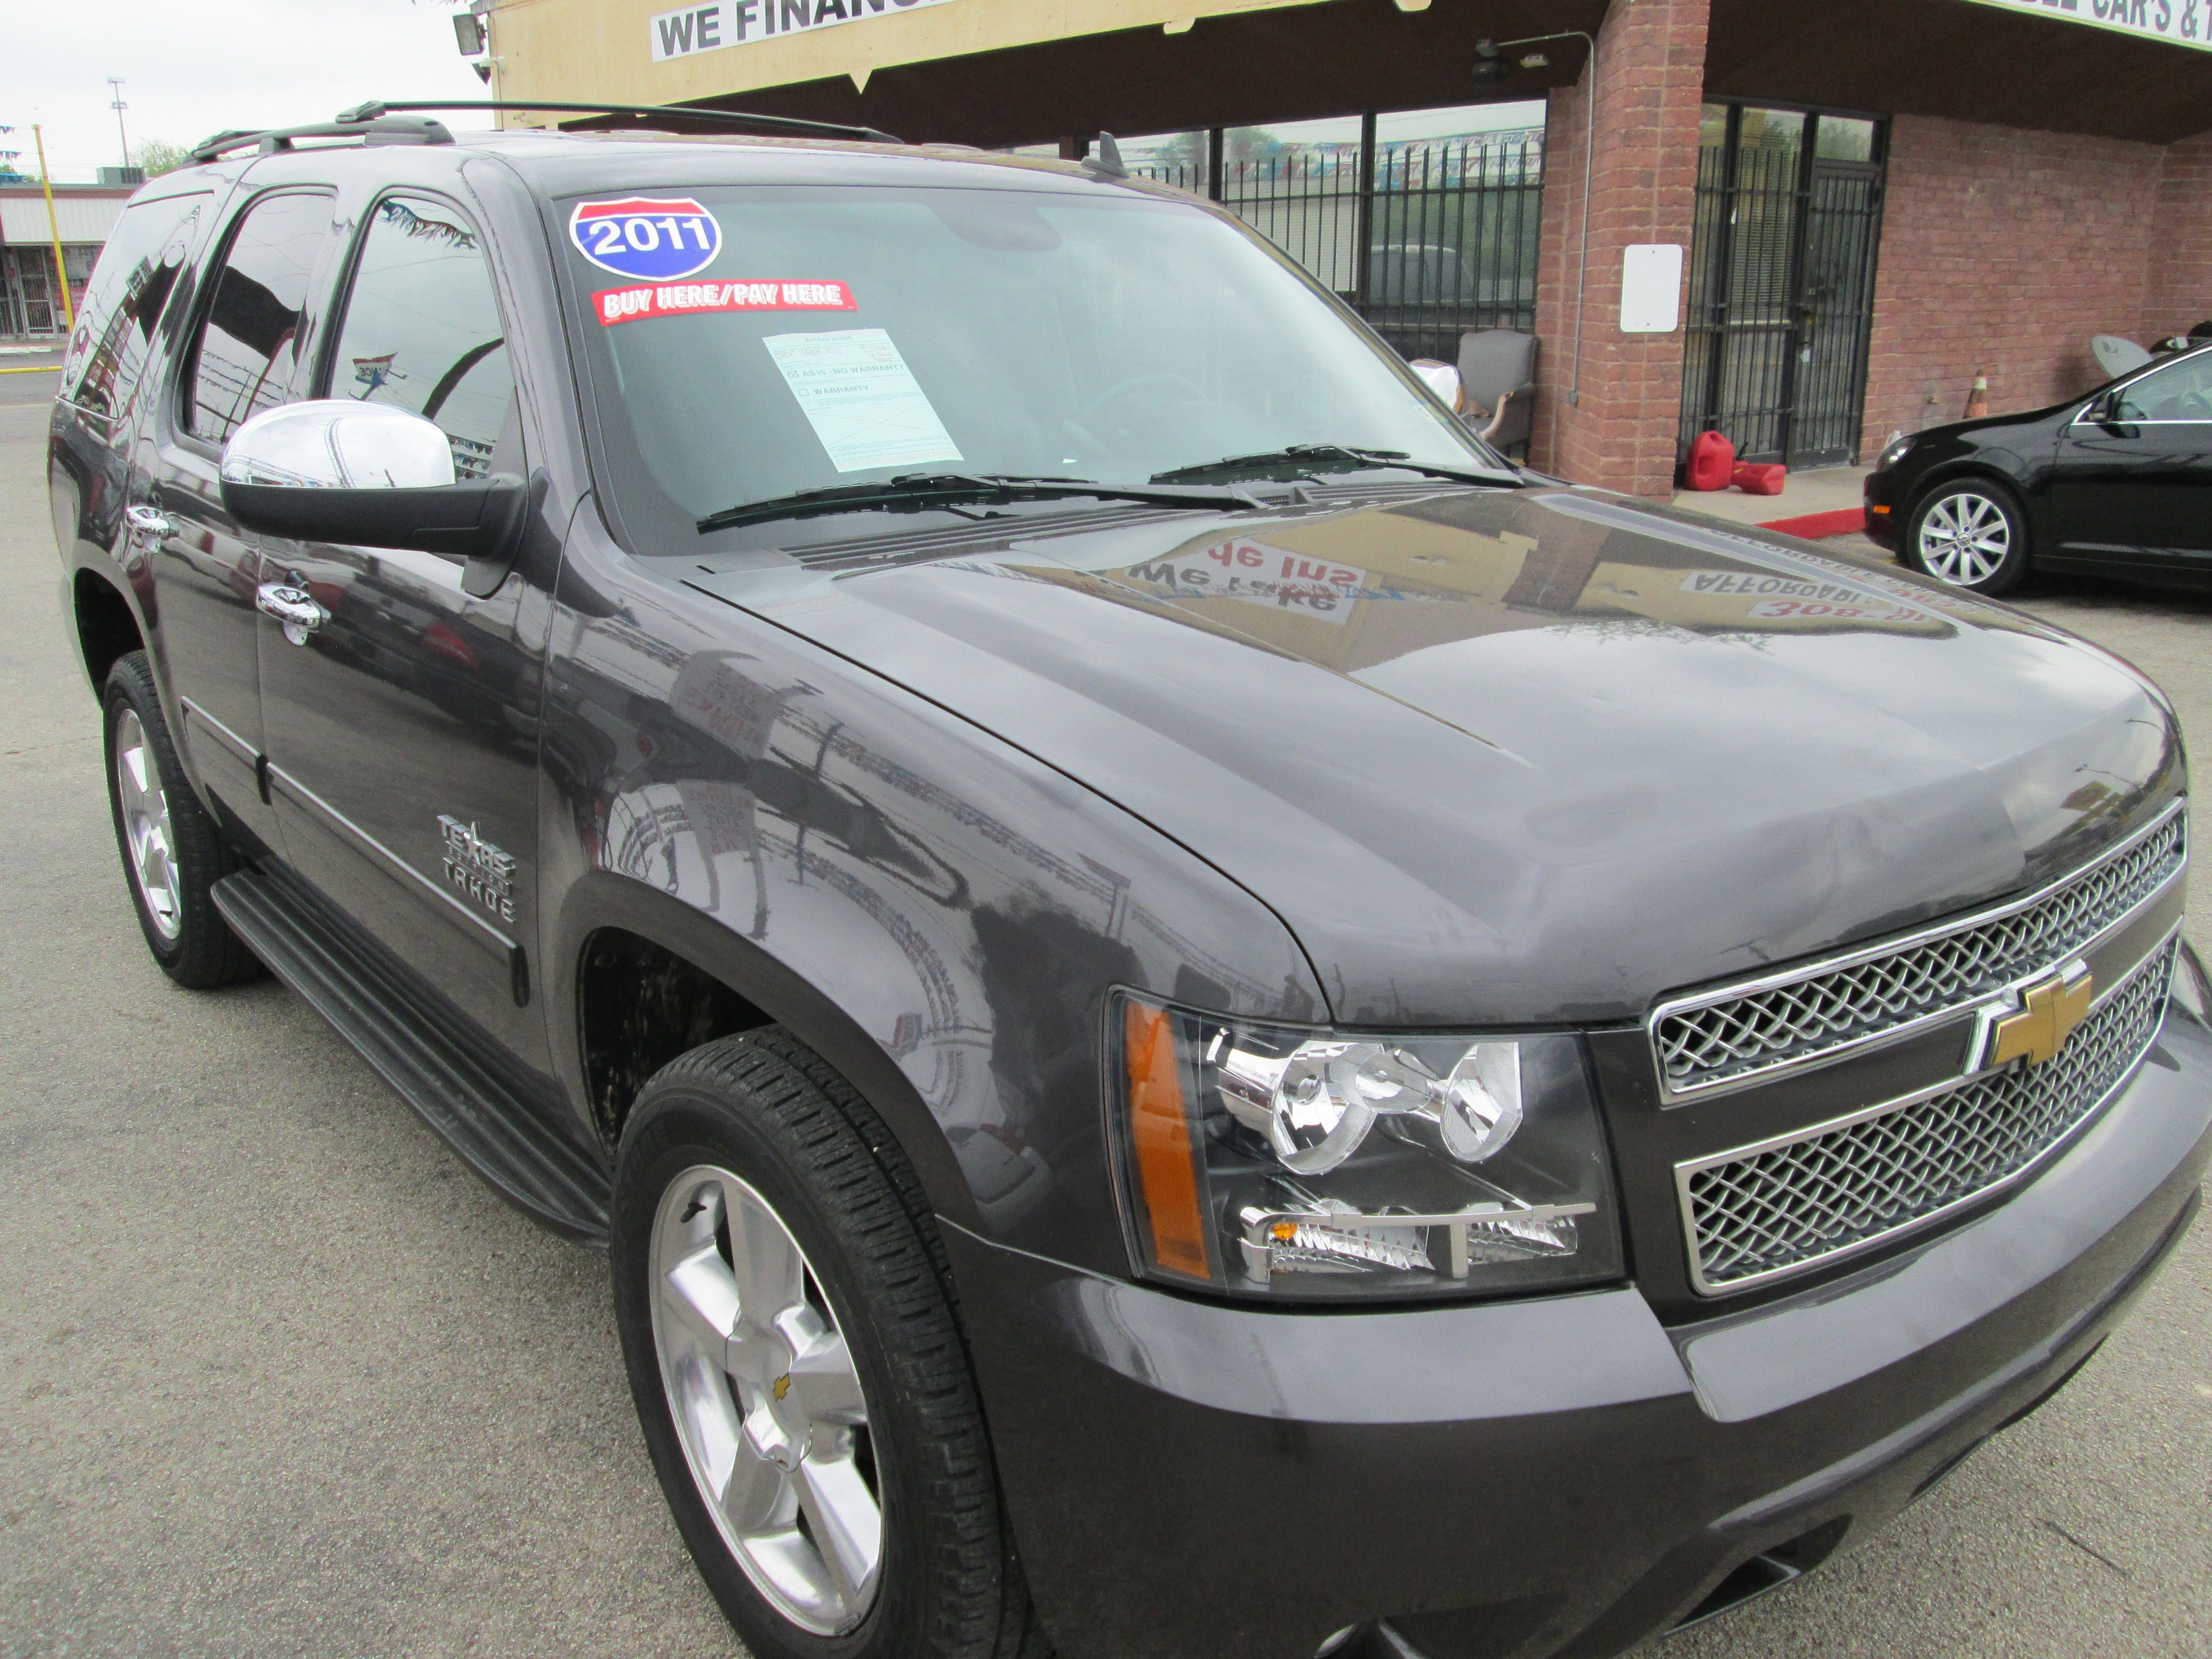 2011 Chevrolet Tahoe Texas Edition In House Financing For All